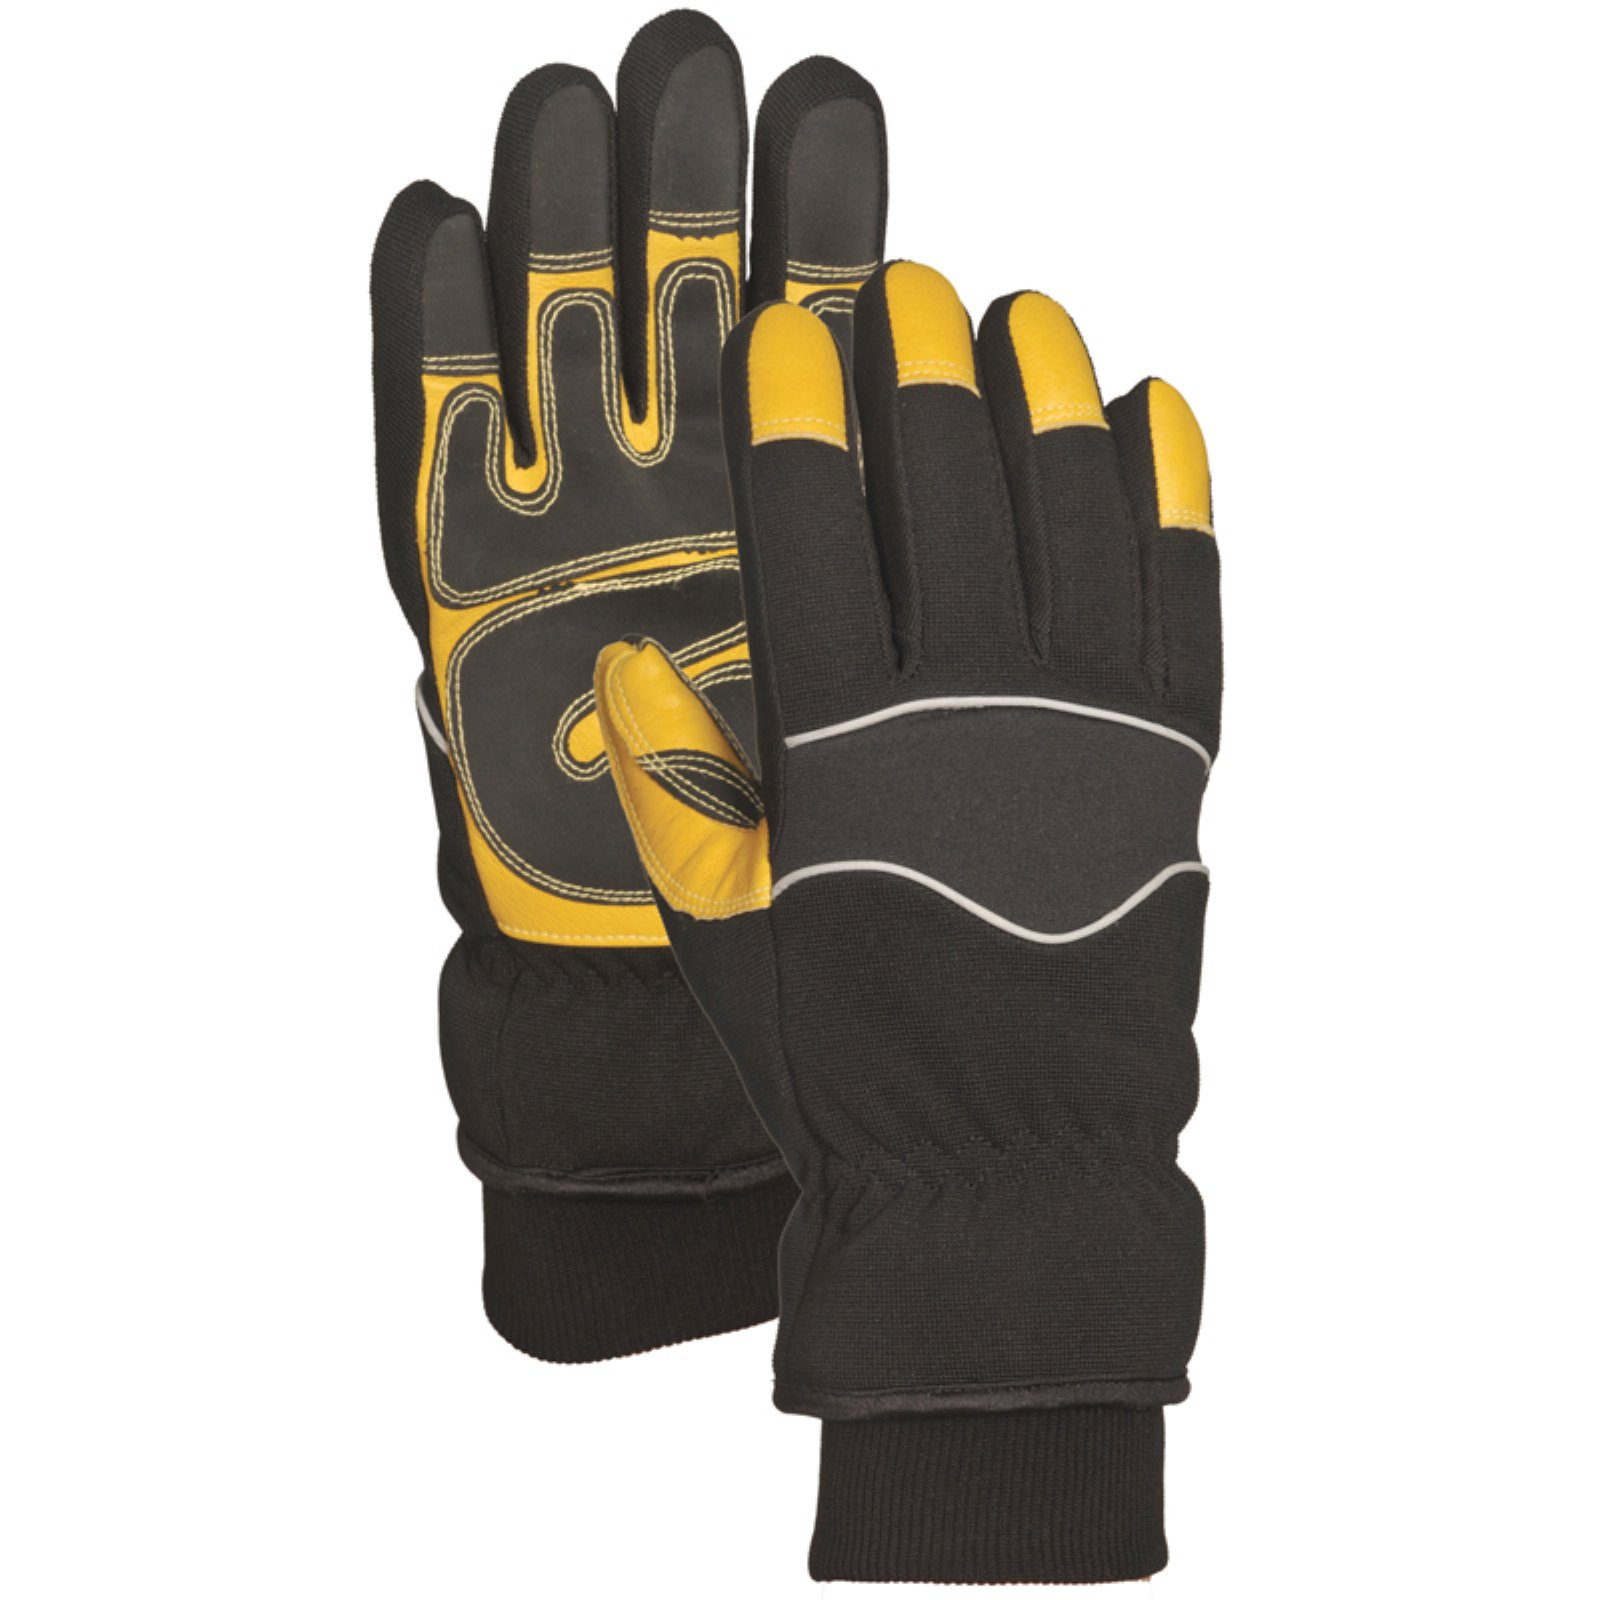 Bellingham Glove CRG23XL XL Insulated Glove by Lfs Glove